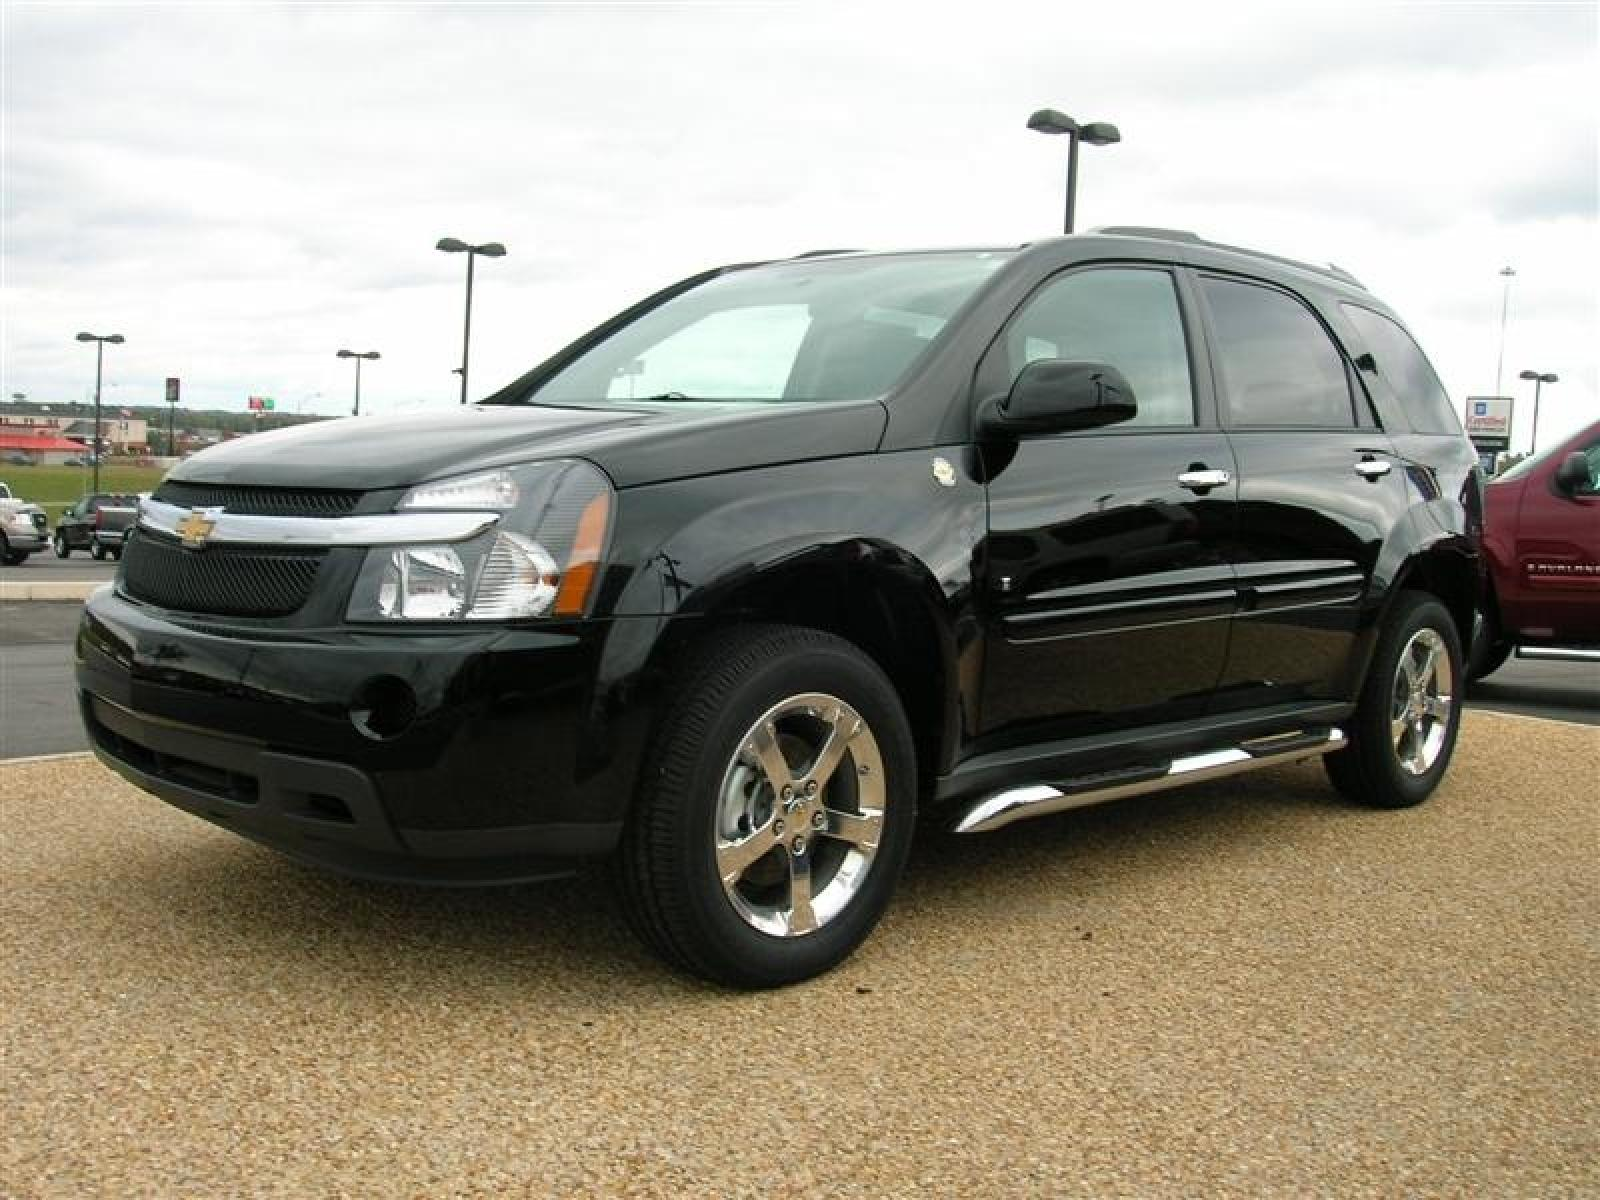 2005 chevrolet equinox information and photos zombiedrive. Black Bedroom Furniture Sets. Home Design Ideas